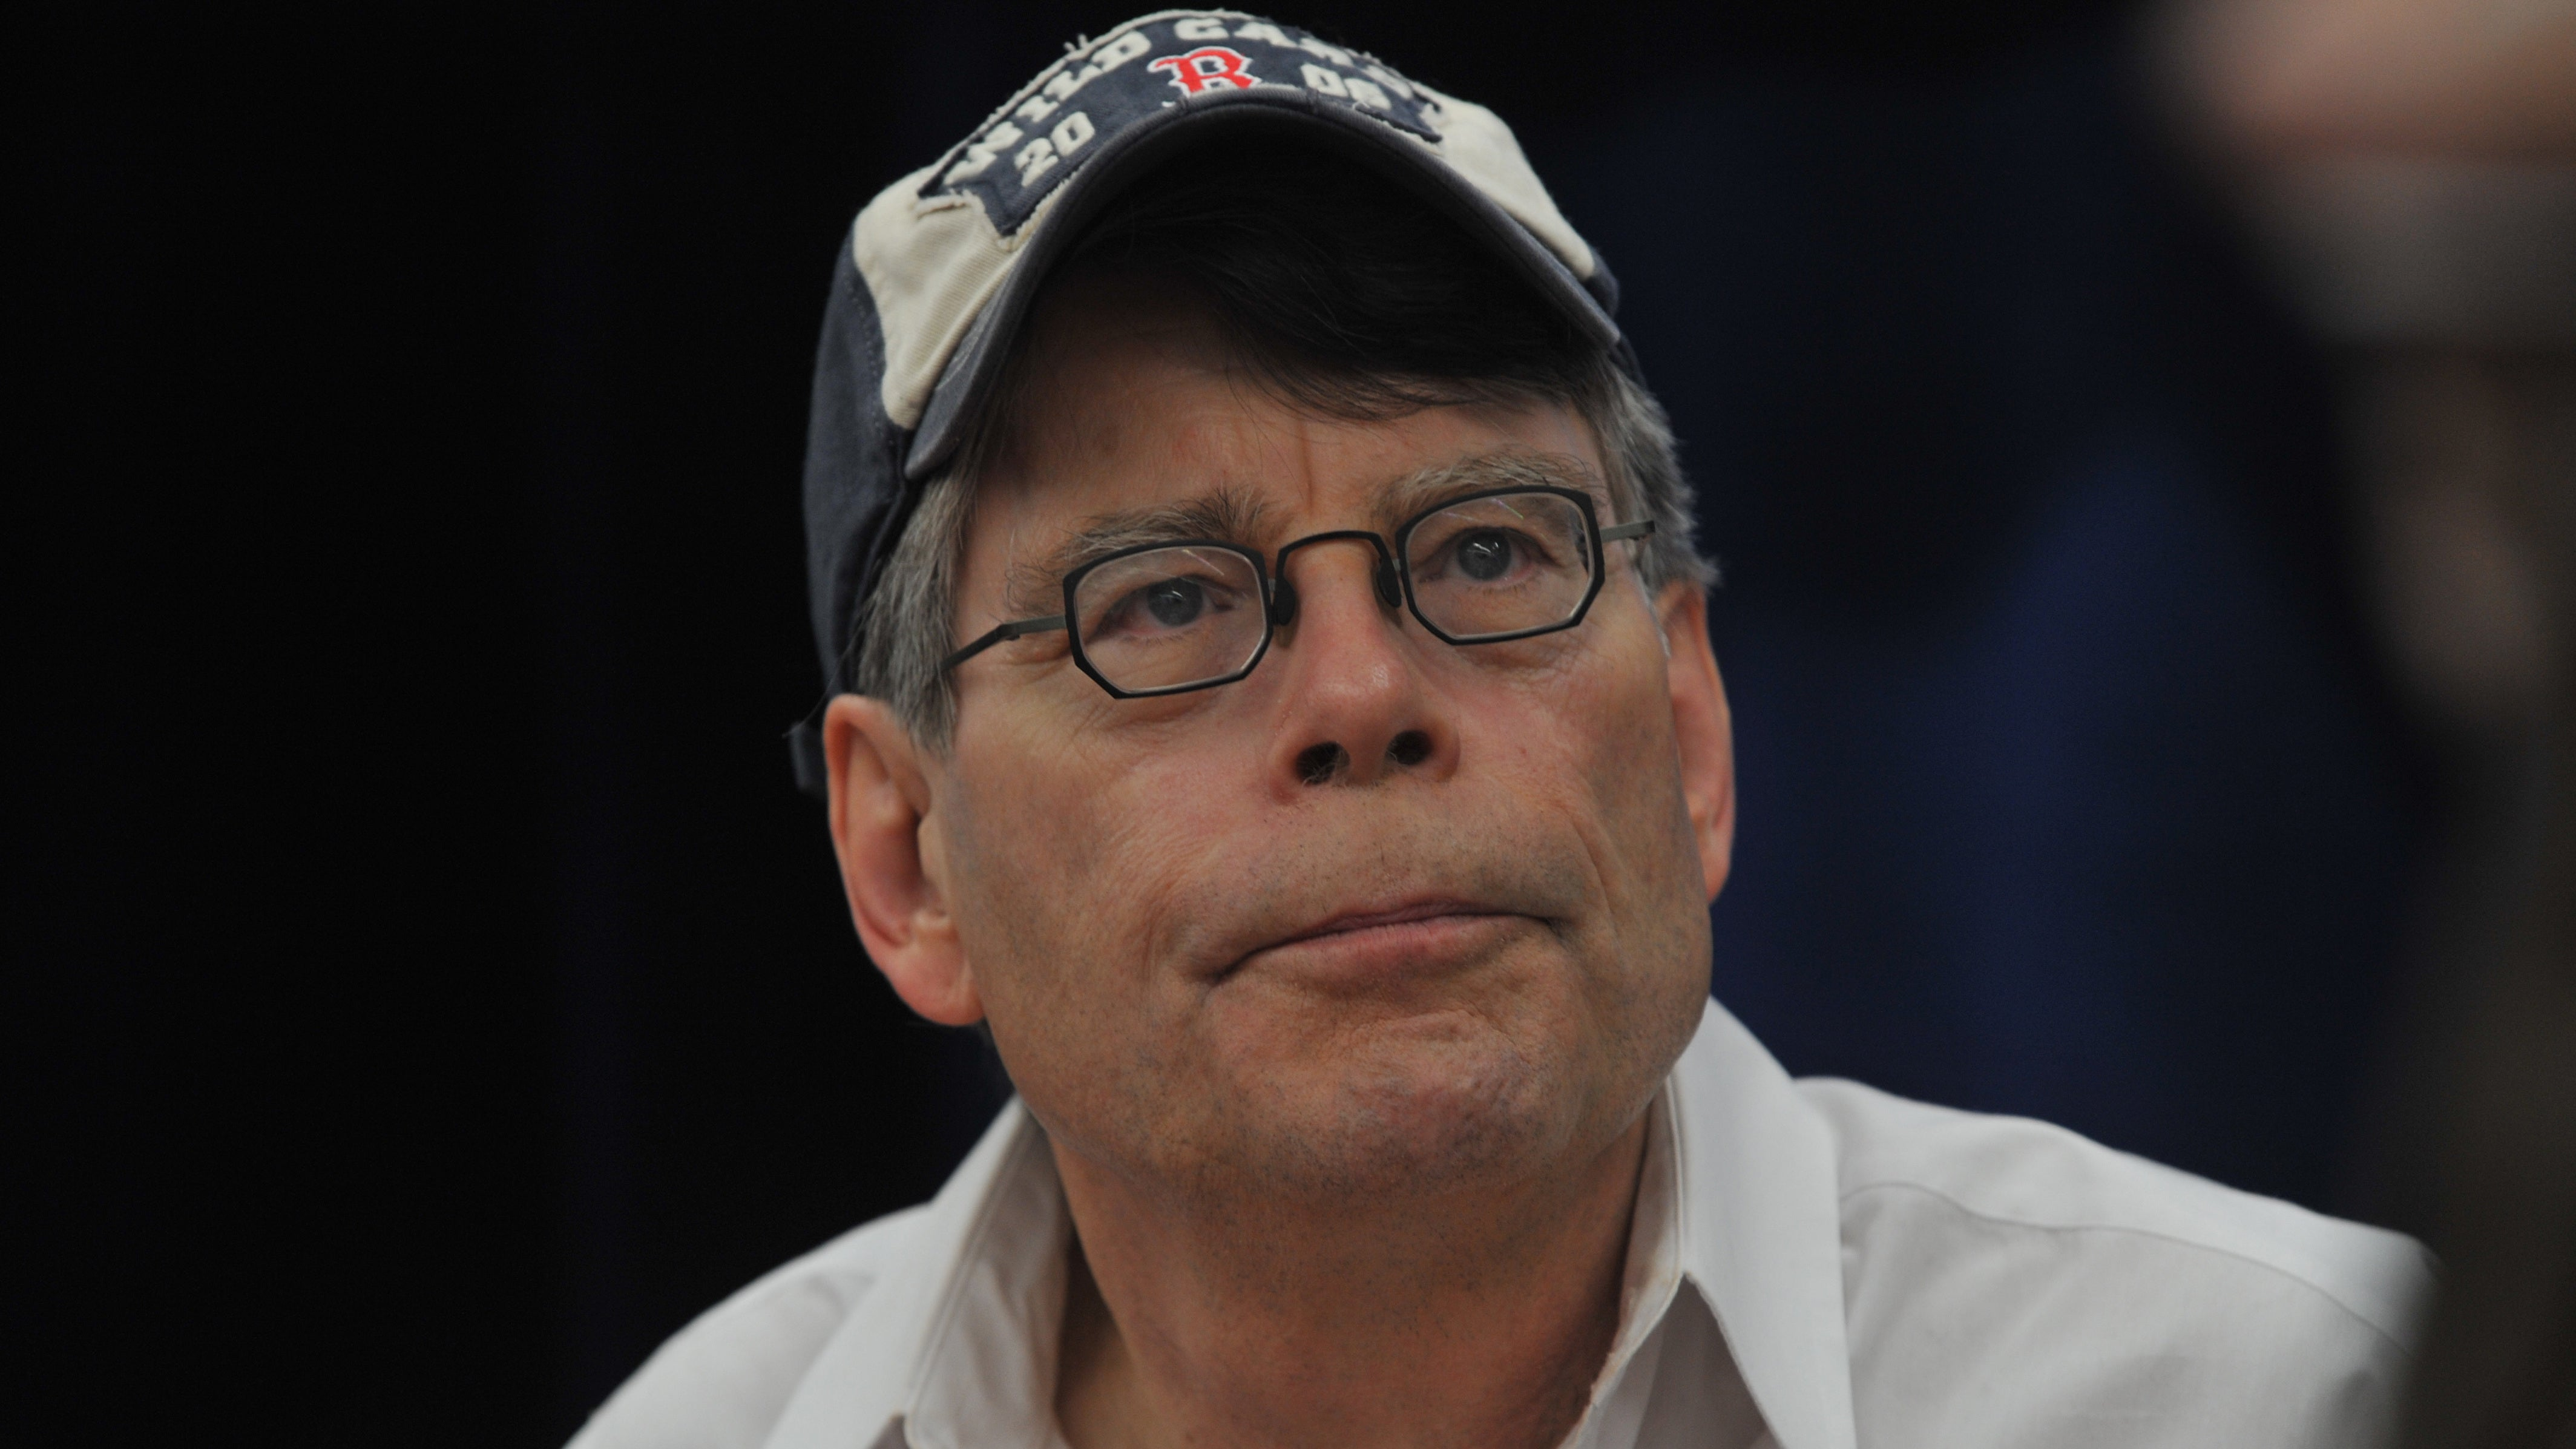 Thousands Of Rare, First Edition Stephen King Books And Manuscripts Destroyed In Freak Accident